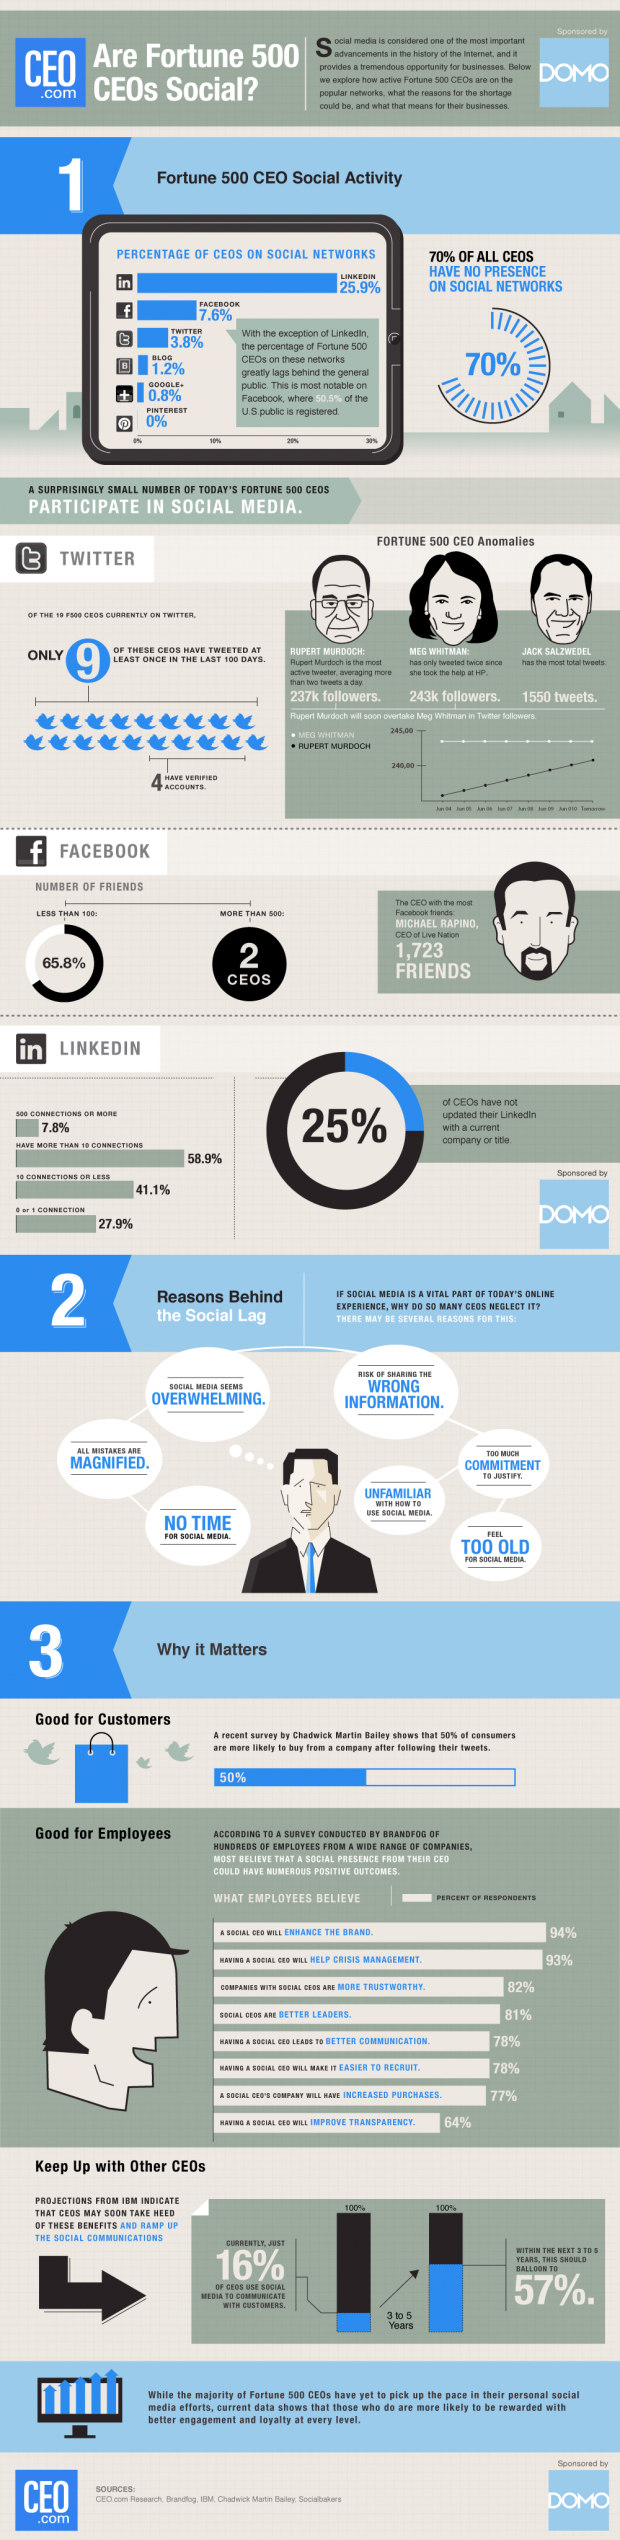 CEO-2012-Social-CEO-Index-Infographic-620x2540